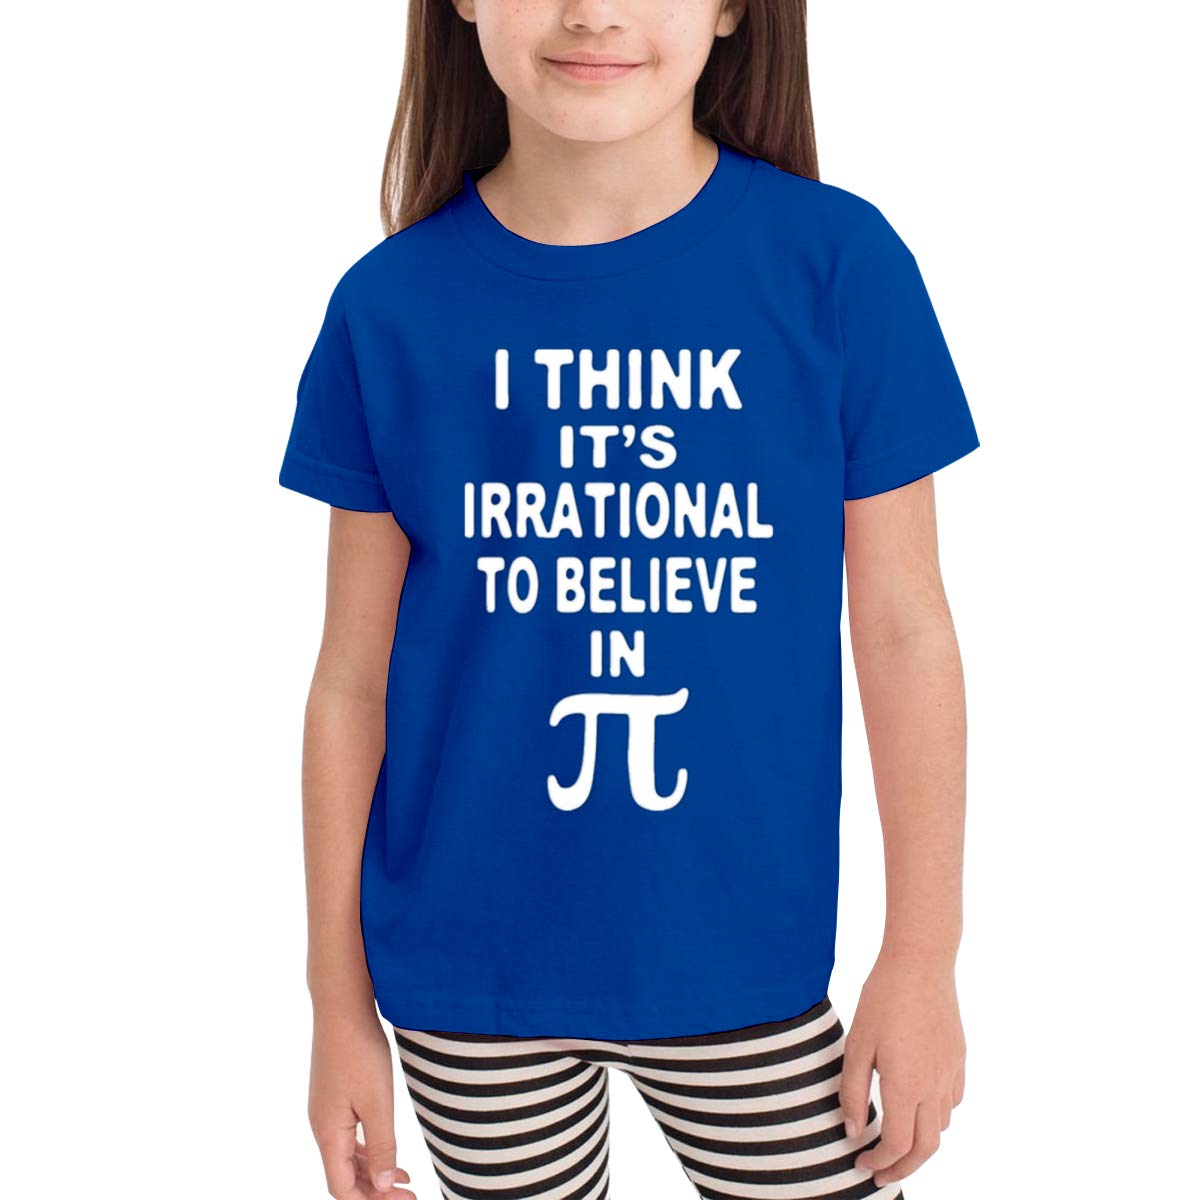 Belive in Pi 100/% Cotton Toddler Baby Boys Girls Kids Short Sleeve T Shirt Top Tee Clothes 2-6 T